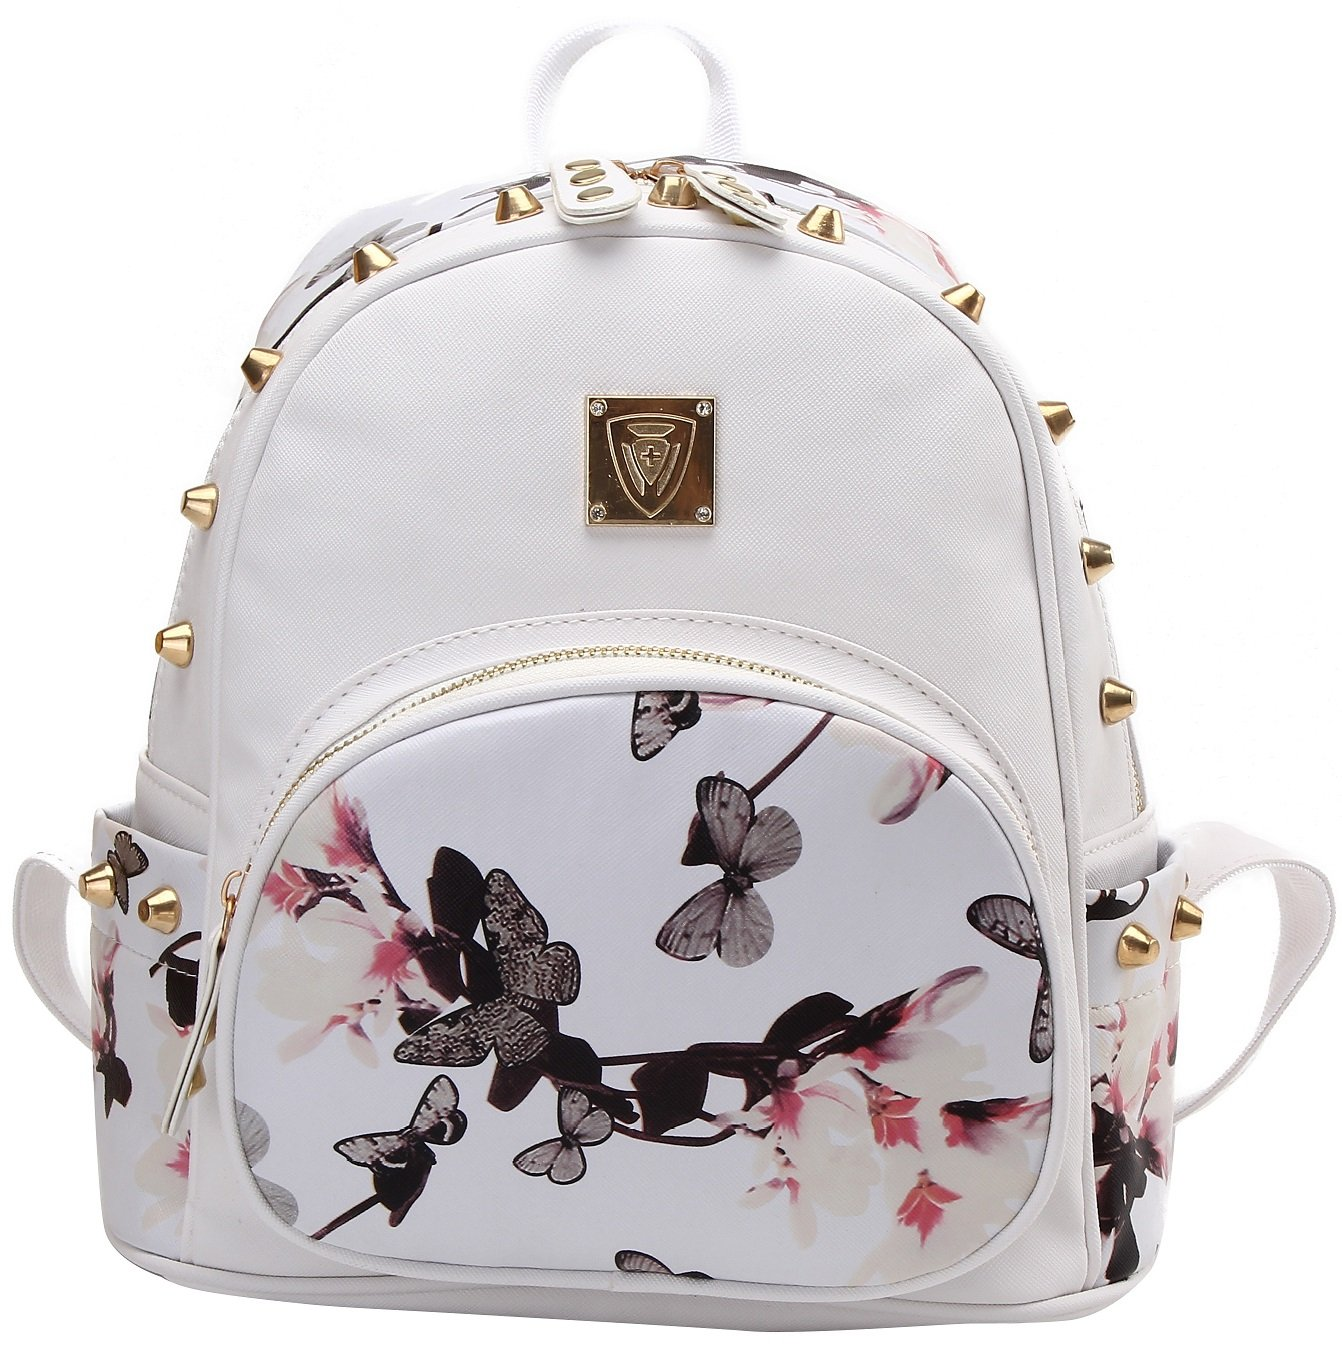 American Shield a-001 Girl's Mini Waterproof IPad Backpack Casual Lightweight Light Strong Sport Daypack 06051, White